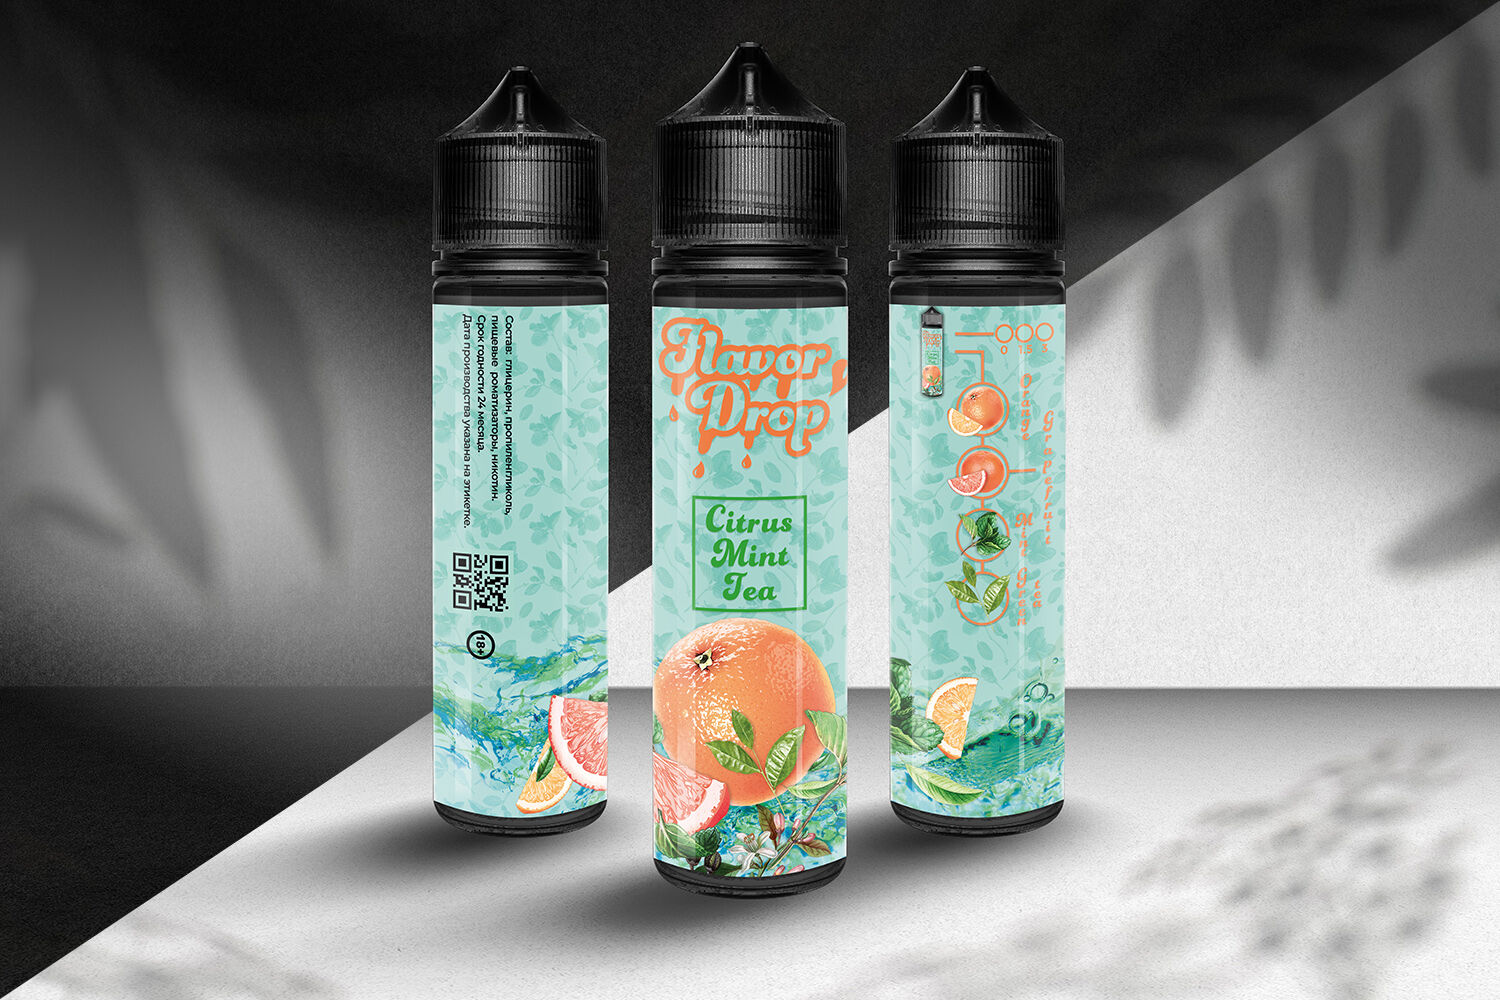 Dark Spray Bottle Mockup